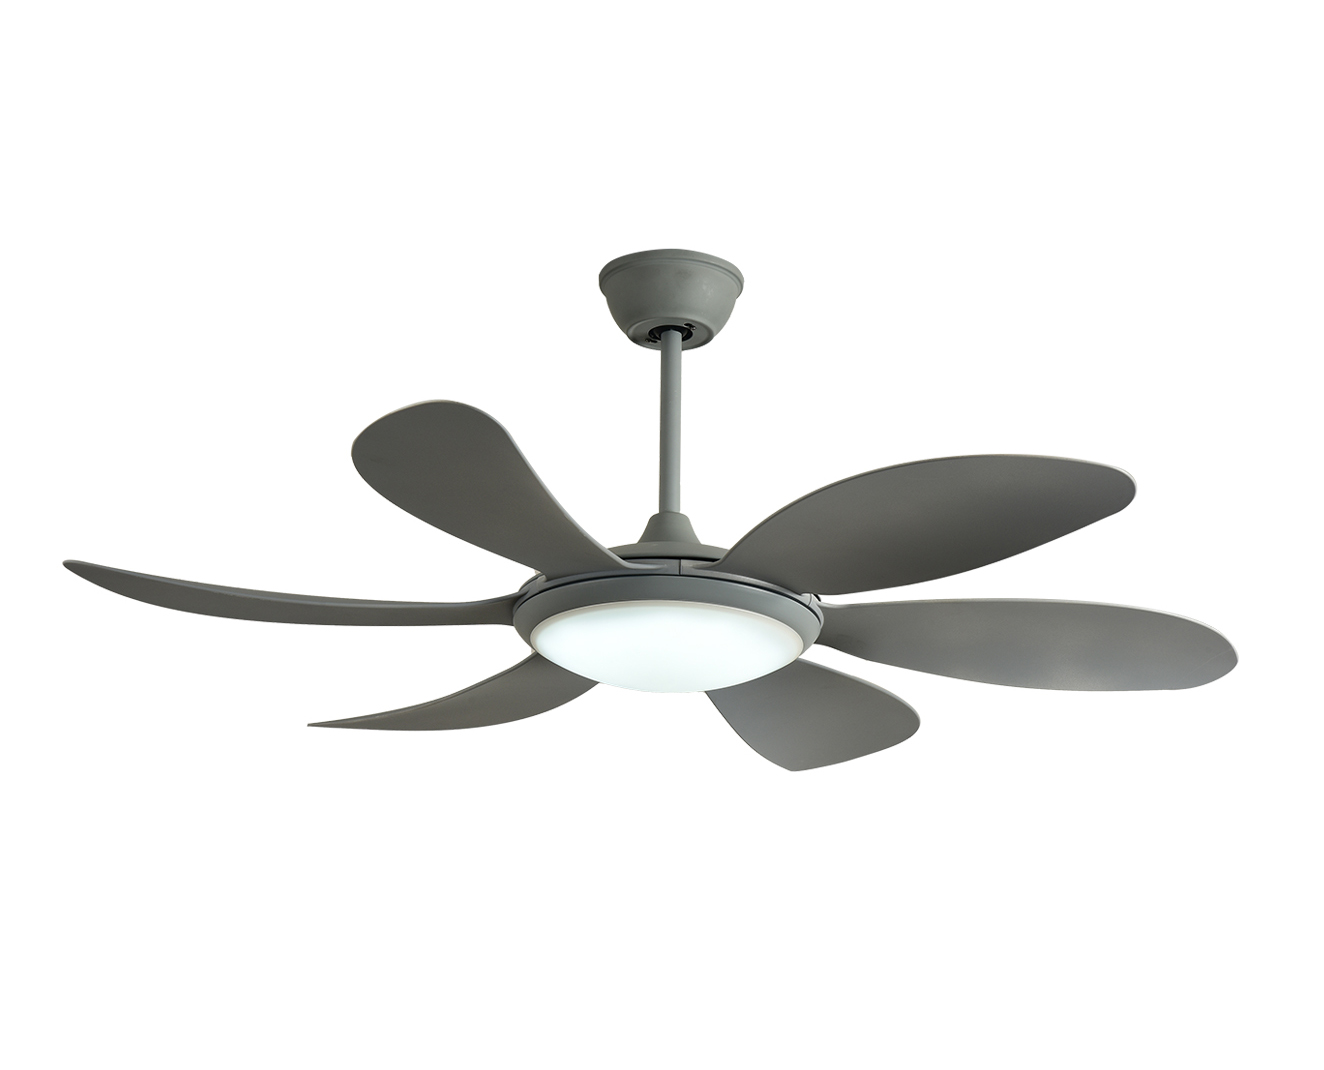 110v low power consumption decorative ceiling fans with lights chandelier ceiling fan with led light